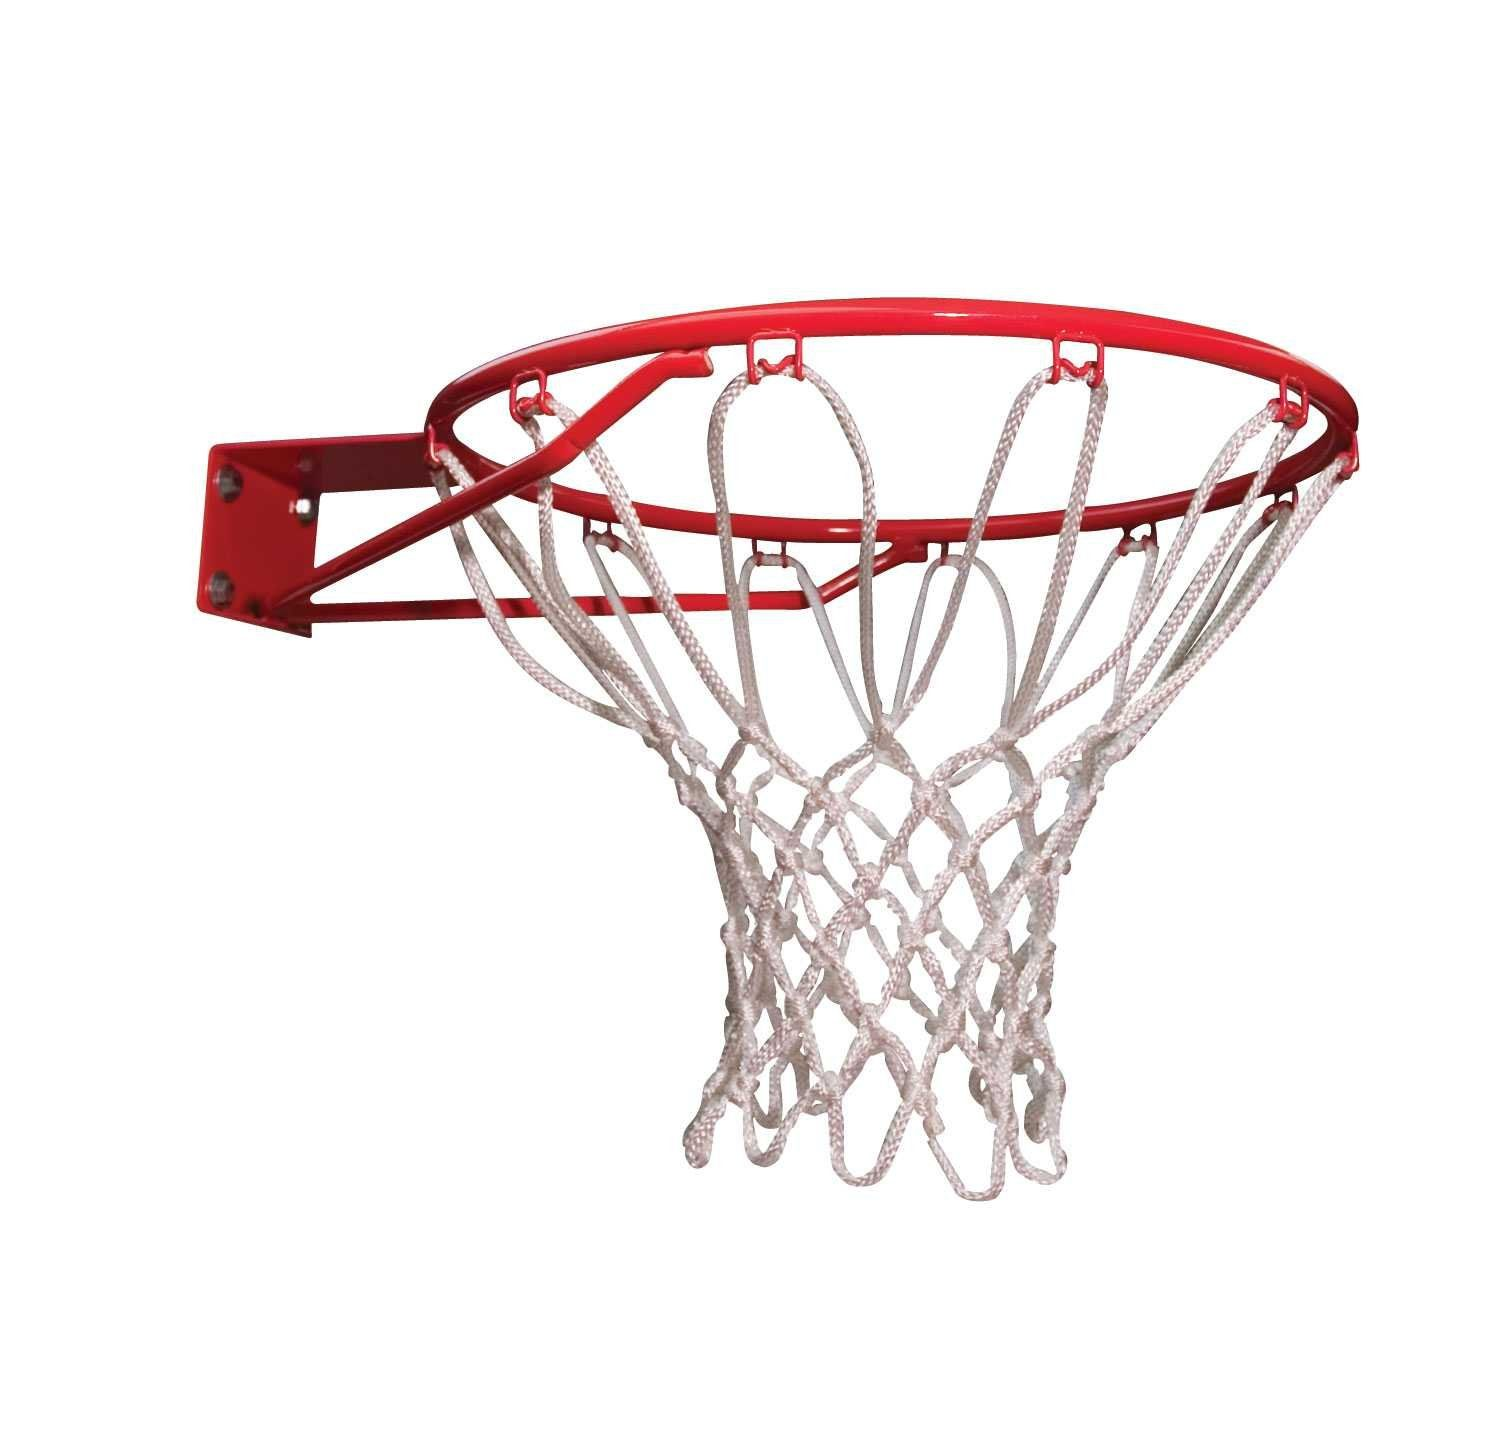 lifetime slam it pro basketball rim 18 inch features a wrap around